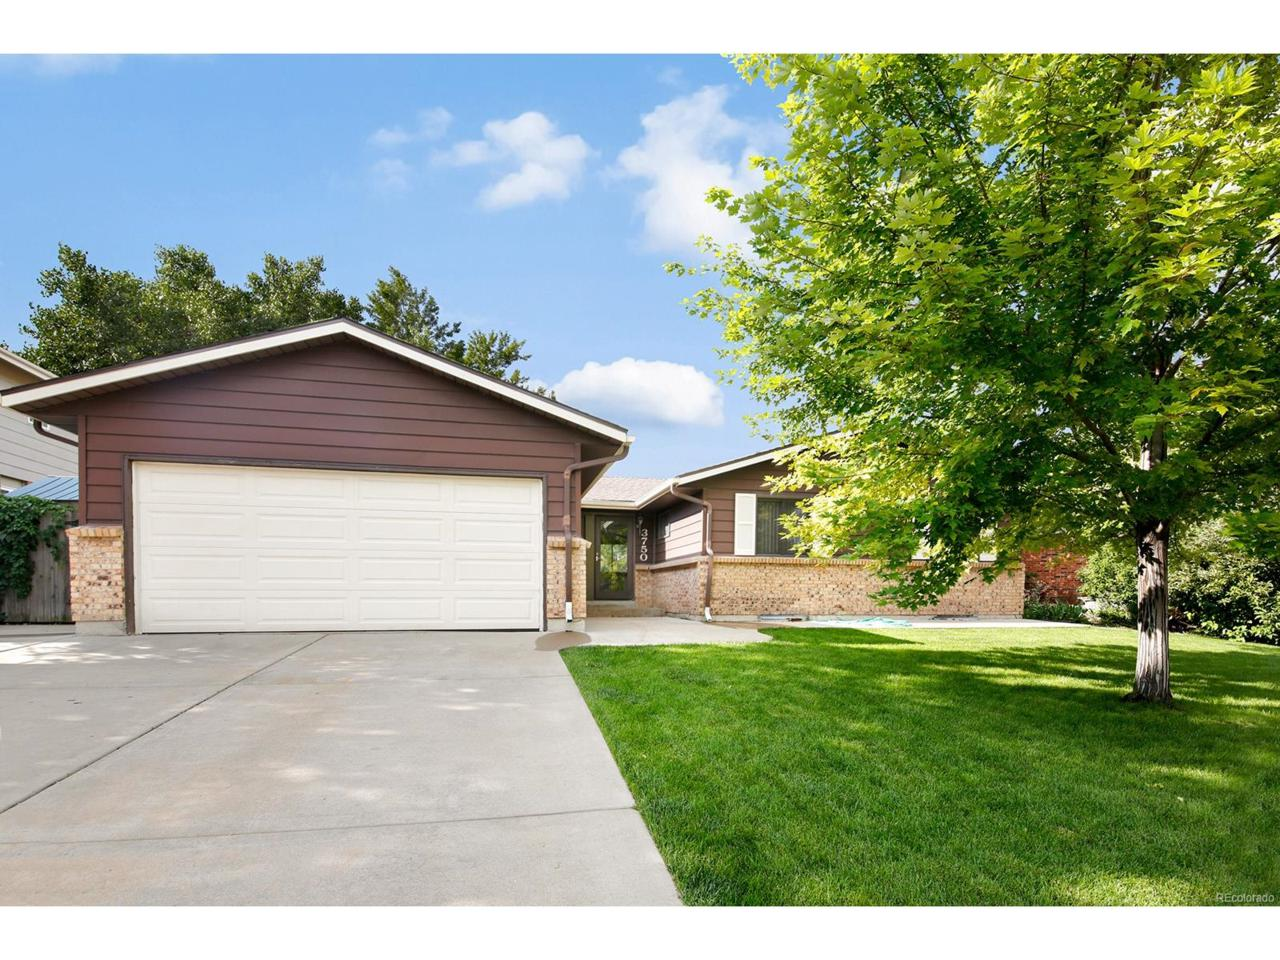 3750 W 95 Th Place, Westminster, CO 80031 (MLS #8199679) :: 8z Real Estate